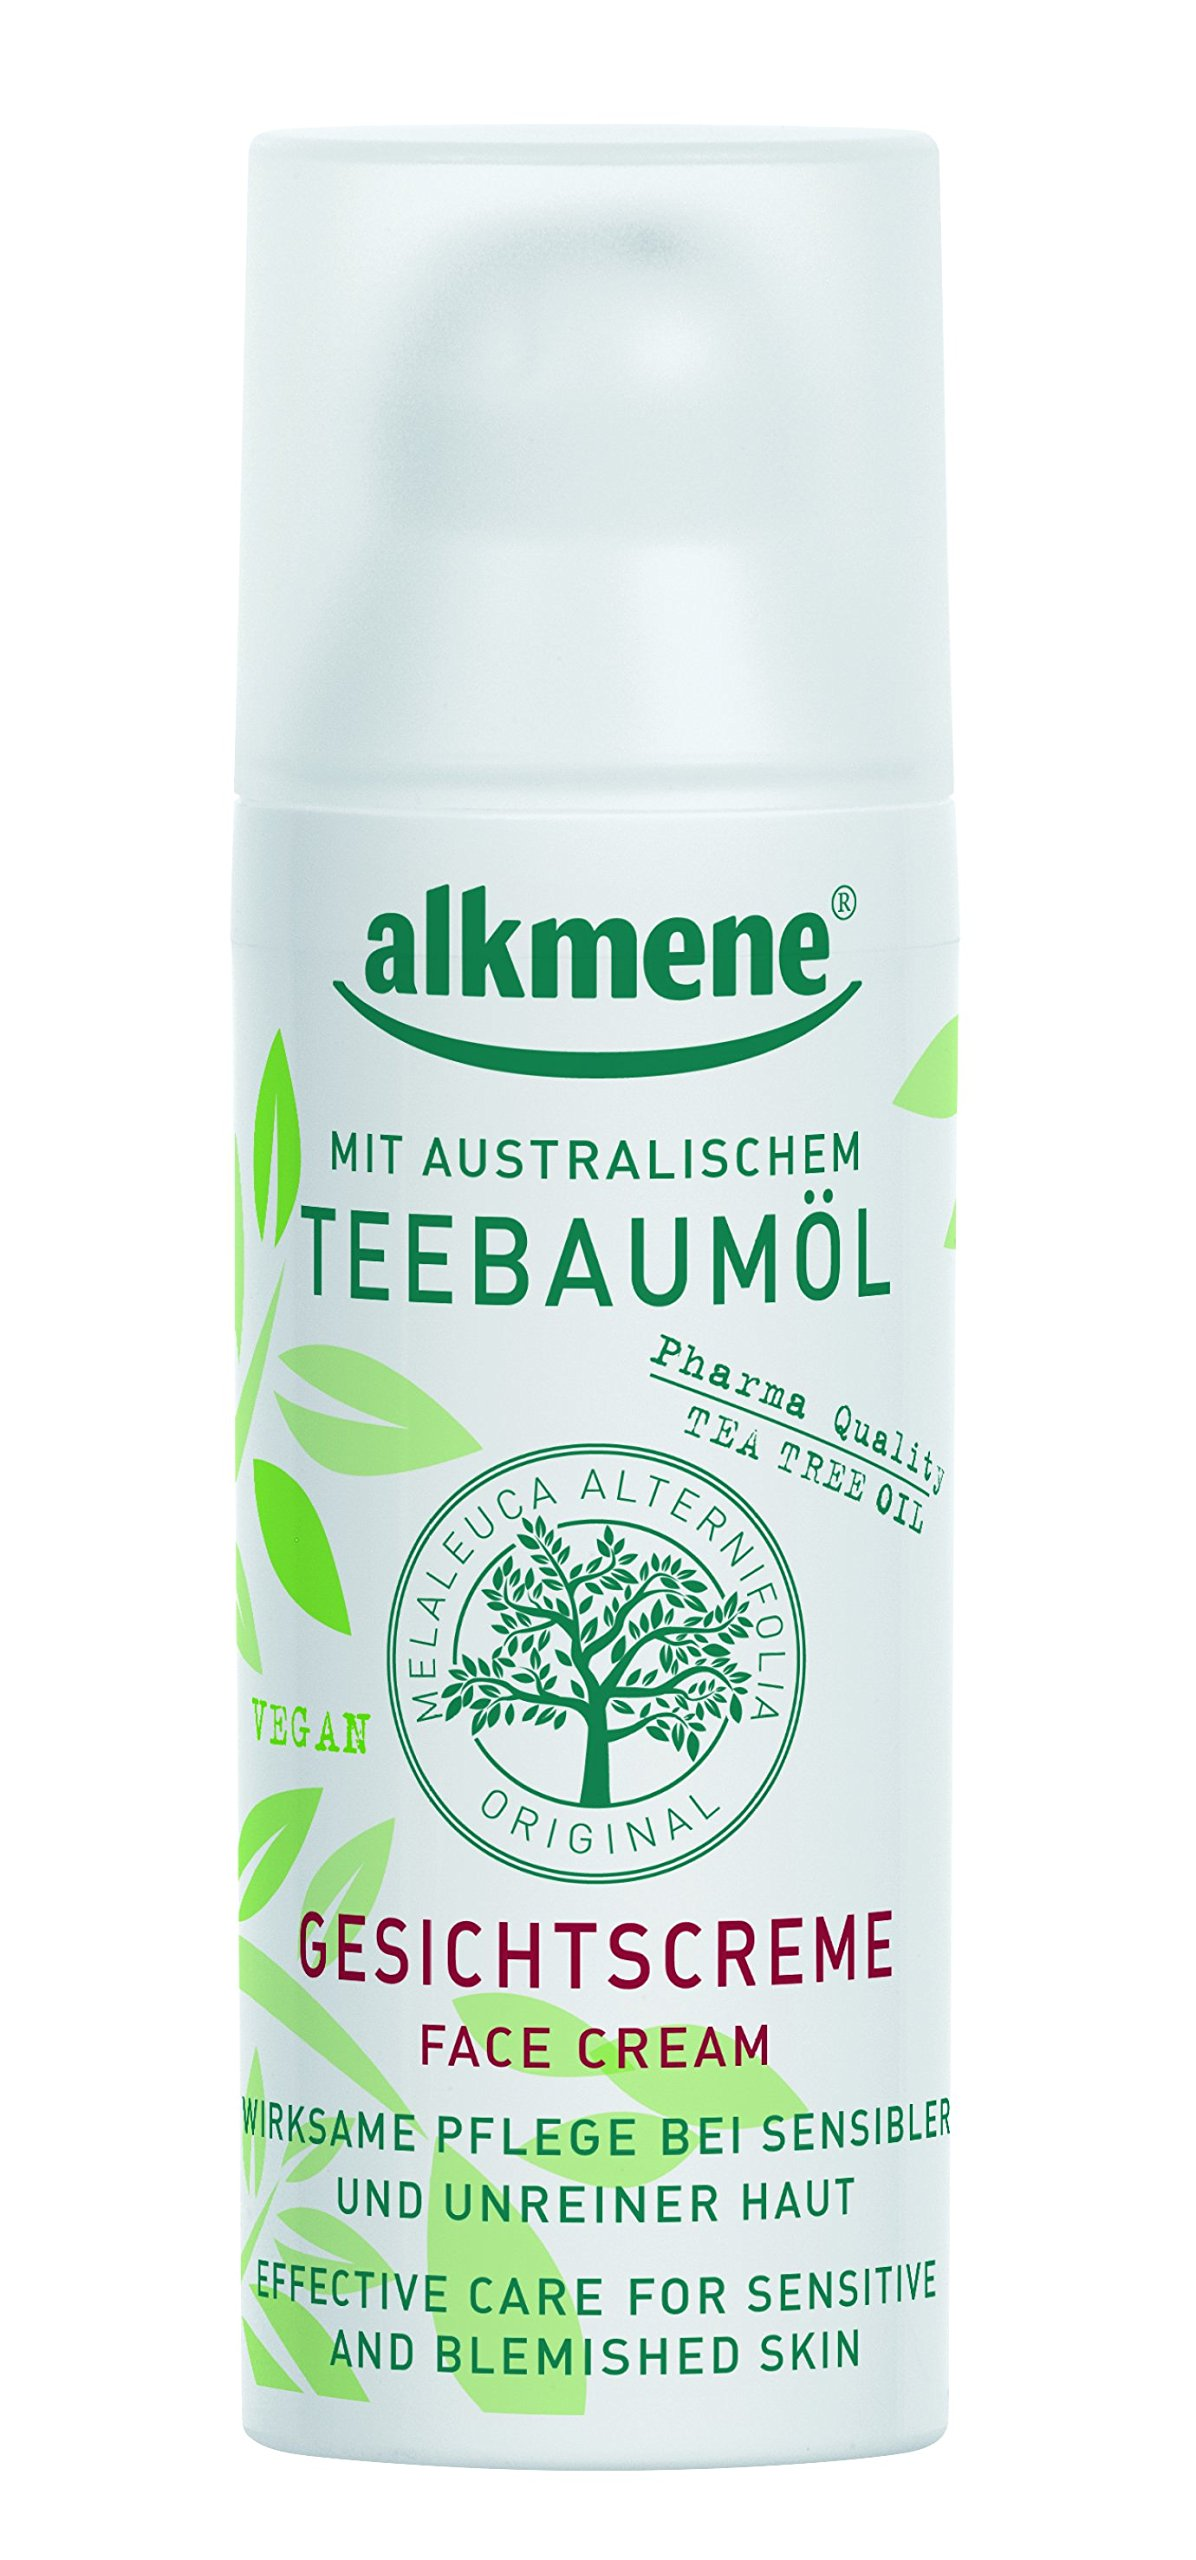 Tea Tree Oil Face Cream from Germany Vegan Paraben Free Quick Absorbing Hydrating & Moisturizing for Oily Acne Prone & Sensitive Skin Infused with Tea Tree Oil 50 ml by Alkmene